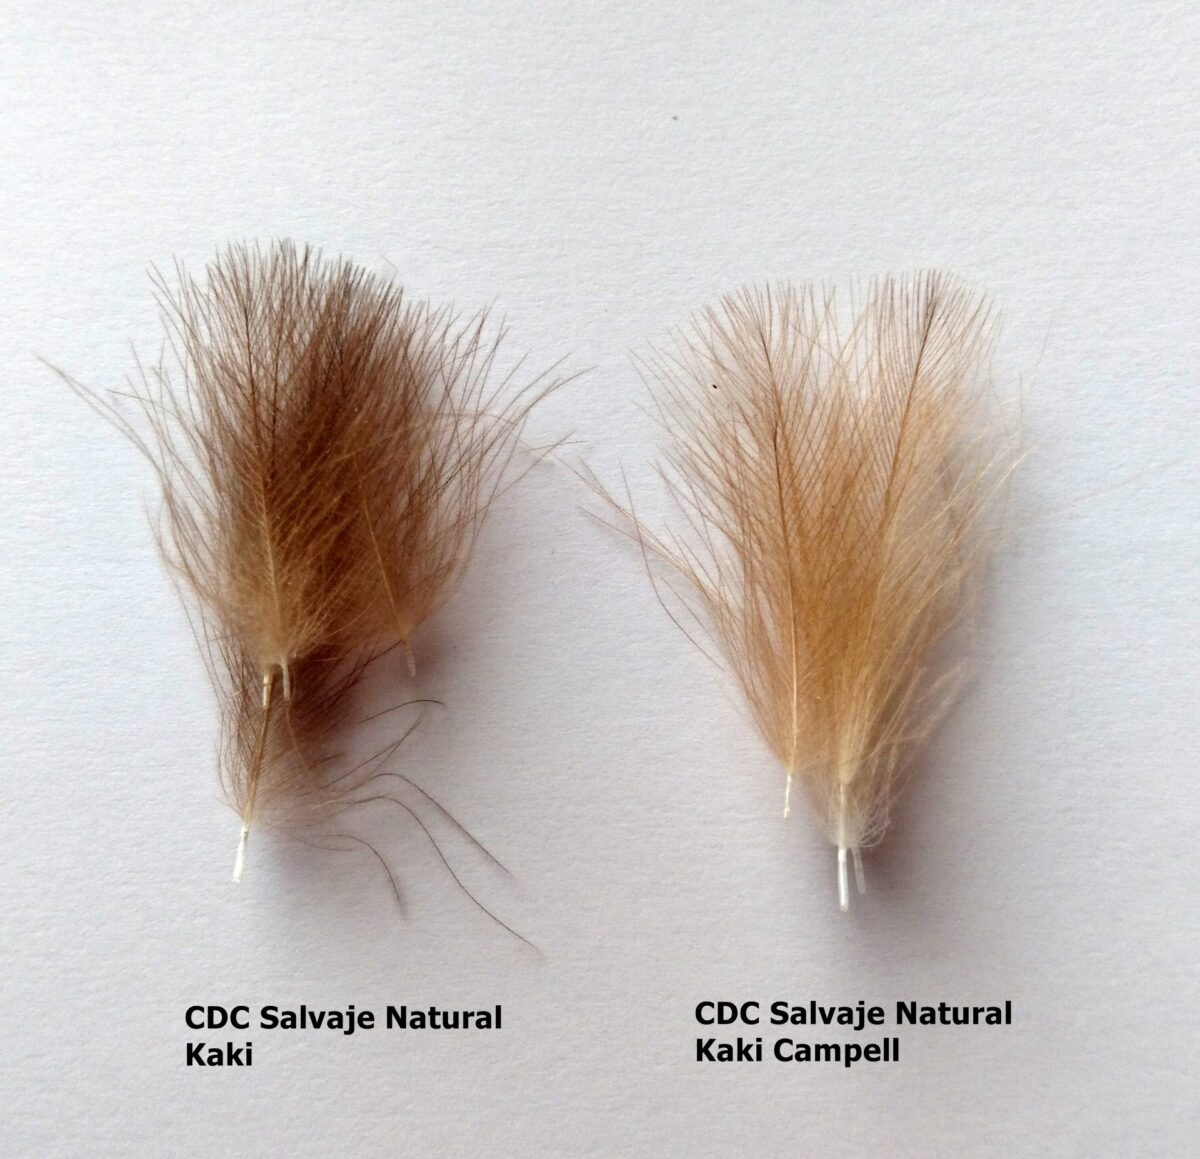 Plumas de CDC Salvaje Natural Select